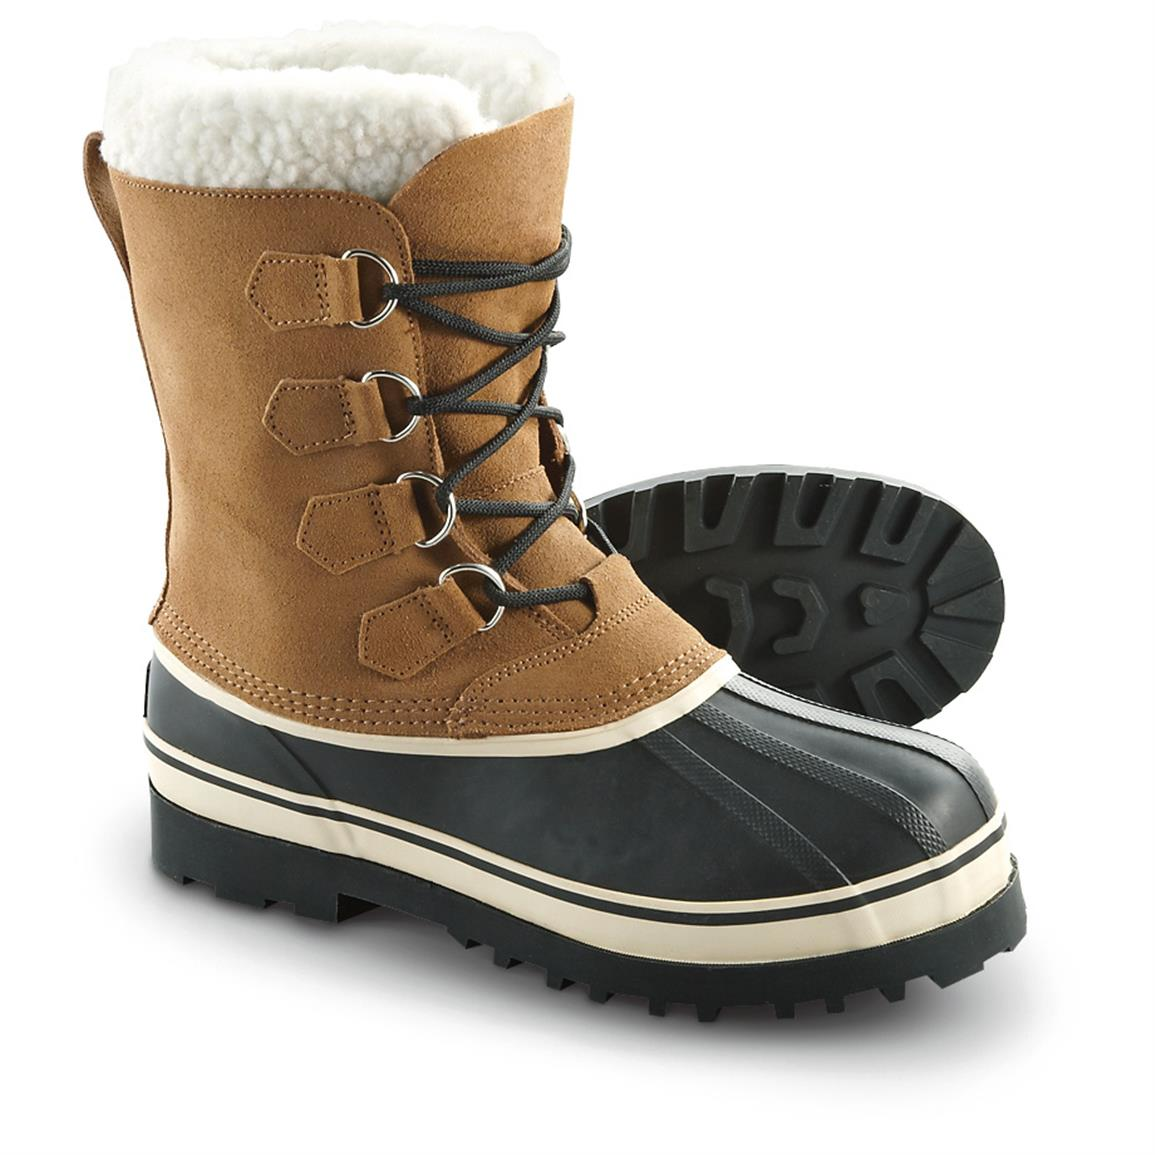 How to Stylishly Wear Mens Winter Boots – careyfashion.com